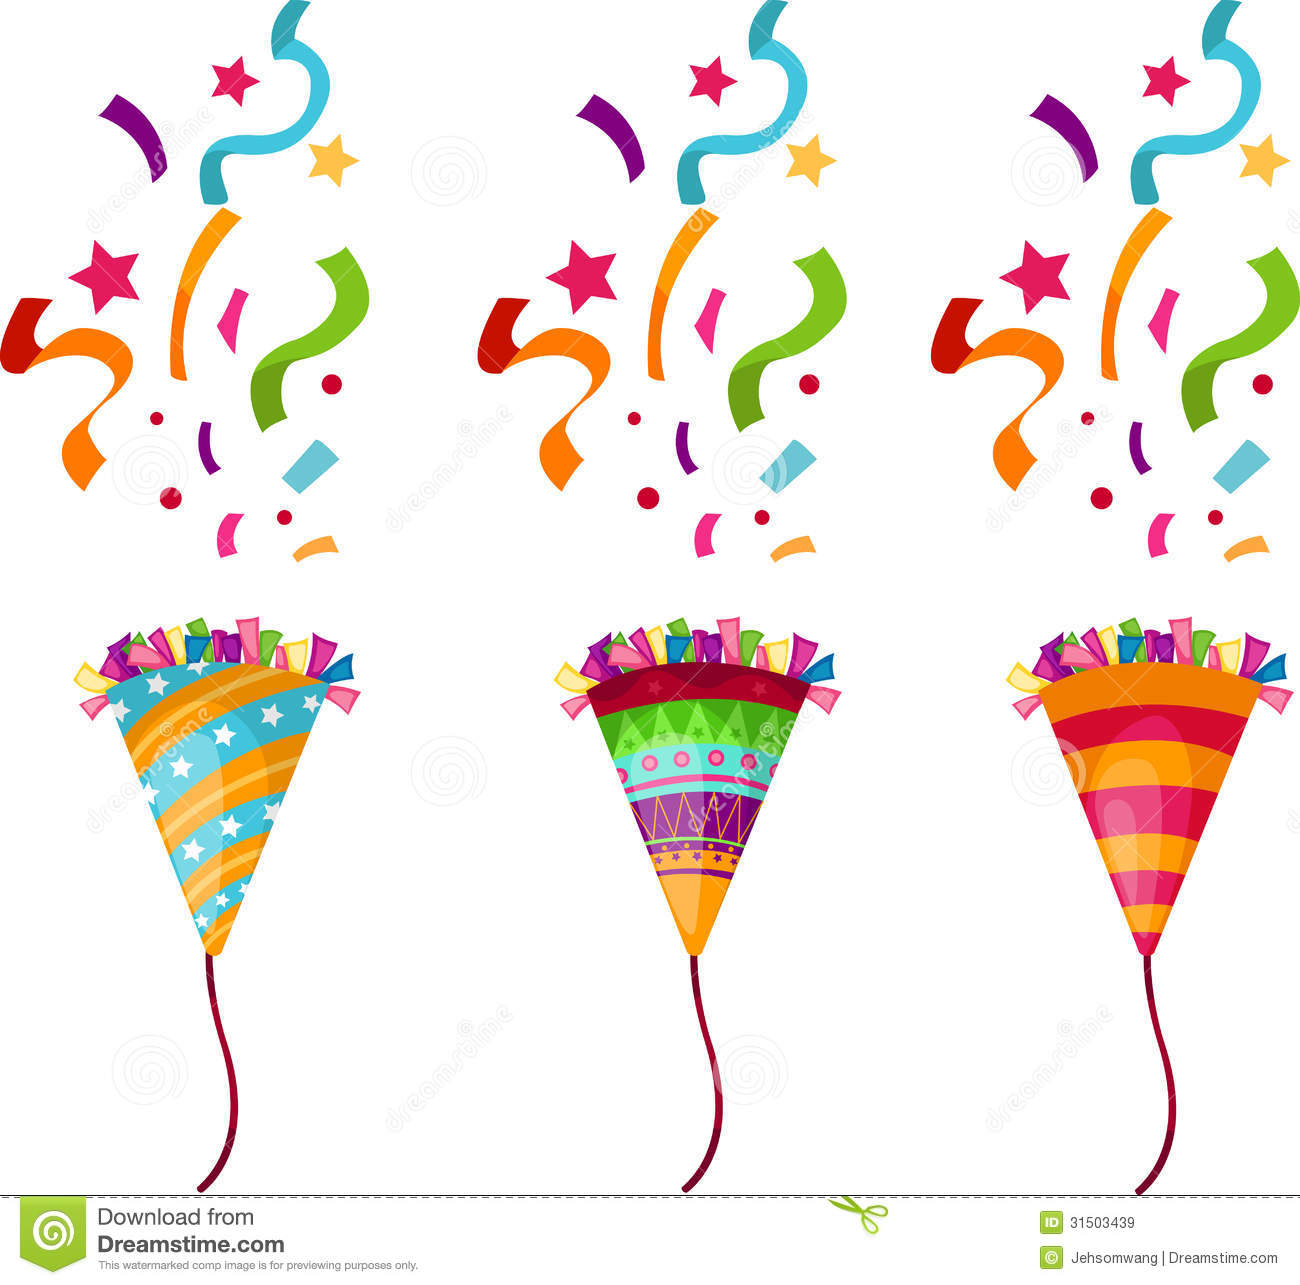 Popper Party Royalty Free Stock Images - Image: 31503439